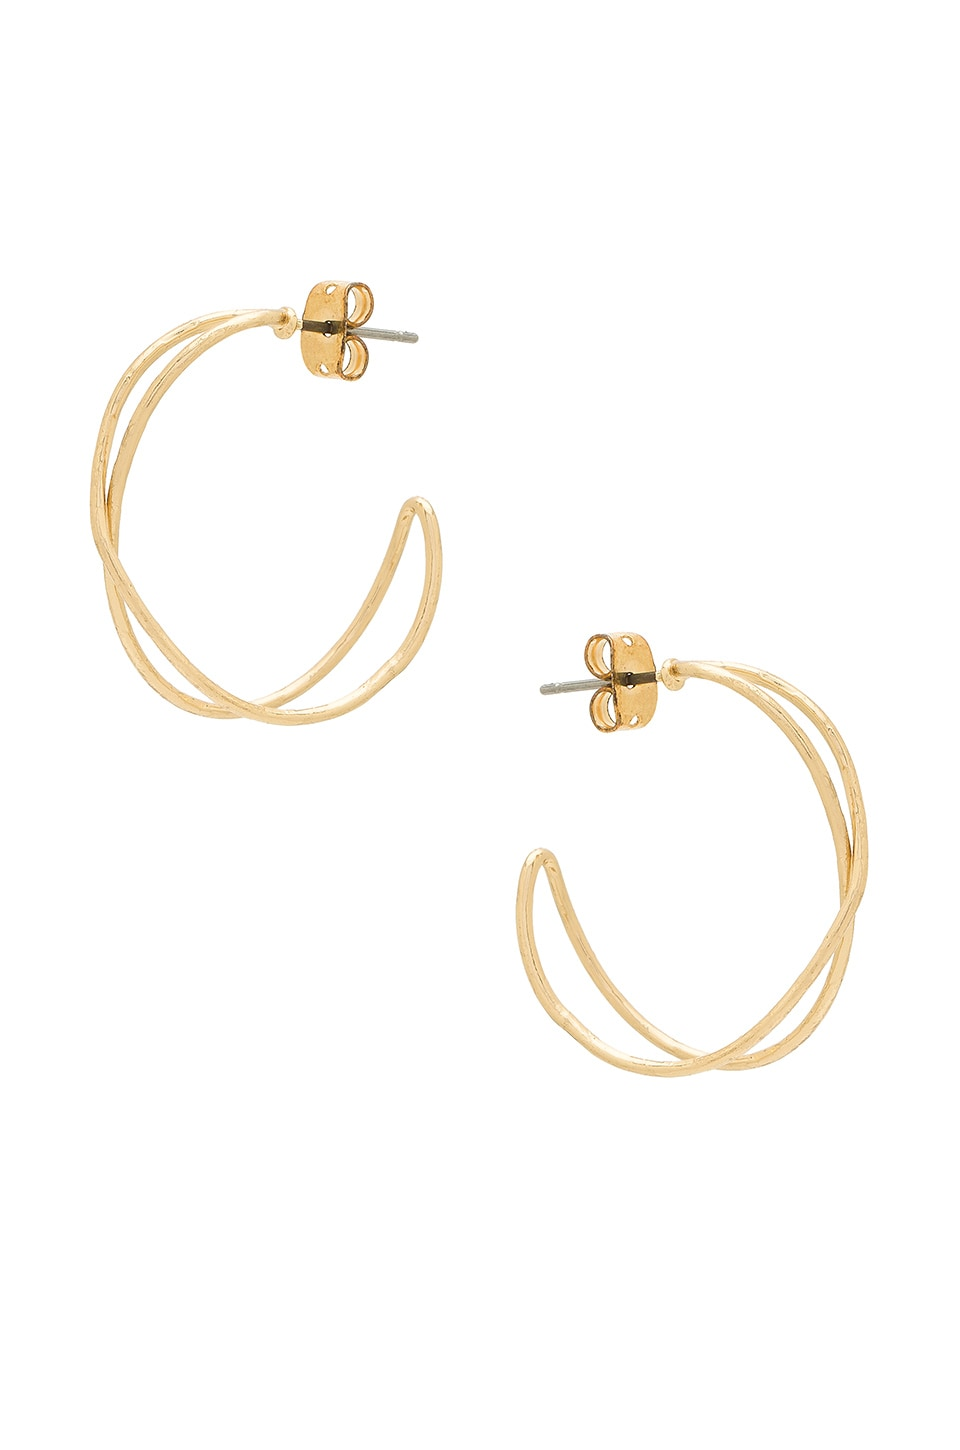 SHASHI Lindsey Earrings in Gold